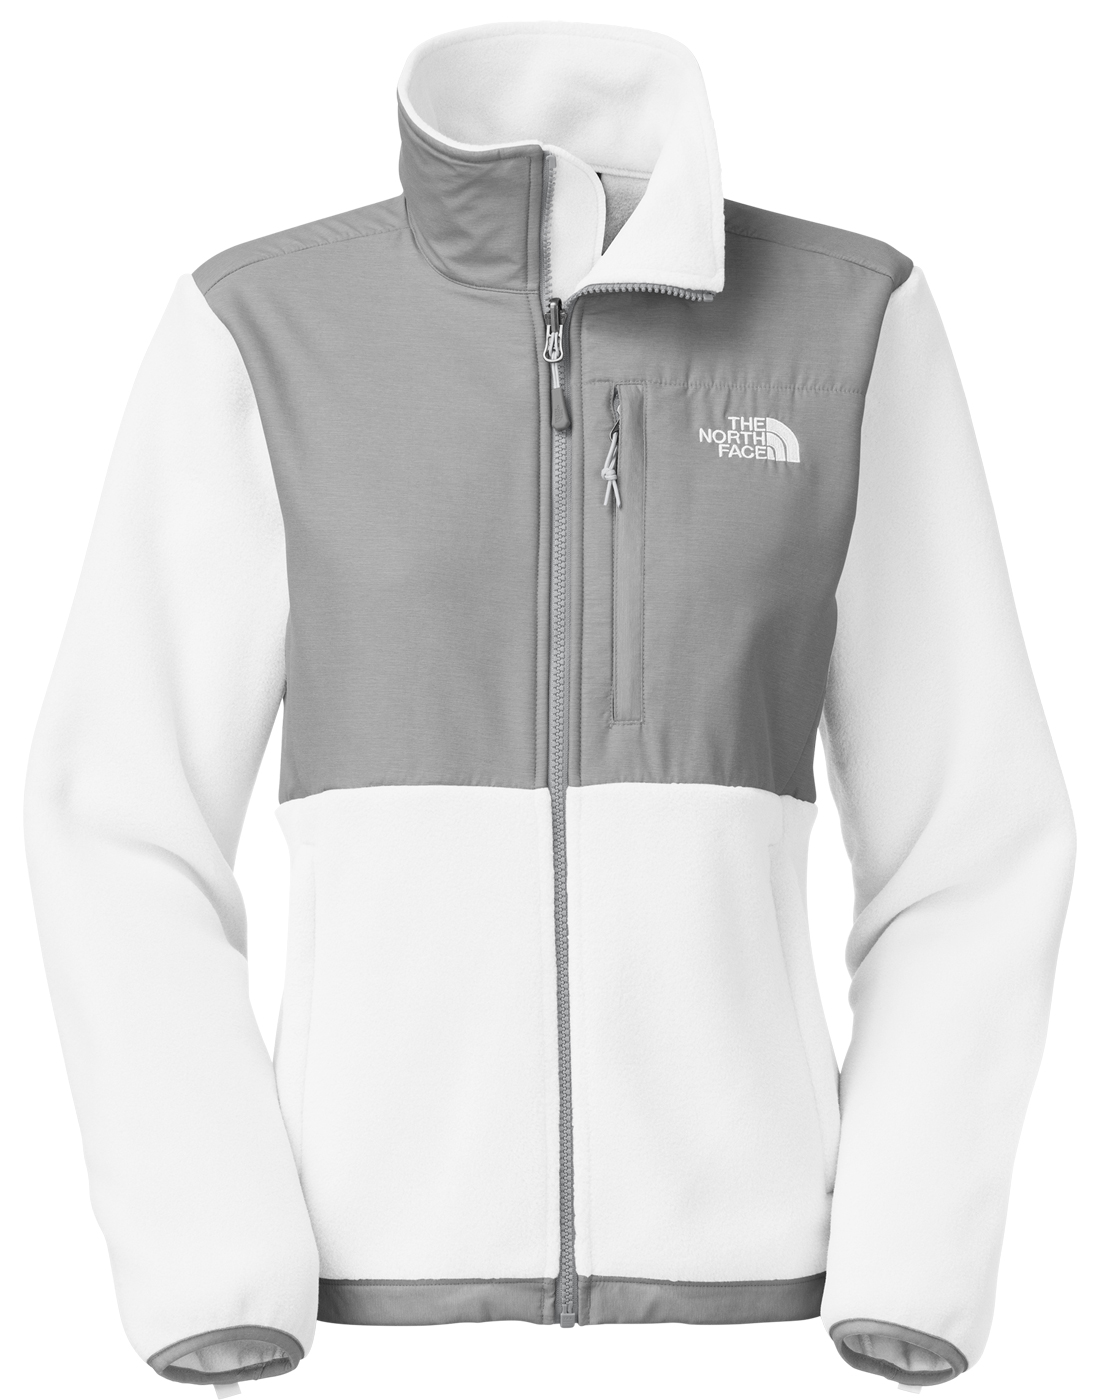 Mens White Fleece Jacket - Best Jacket 2017